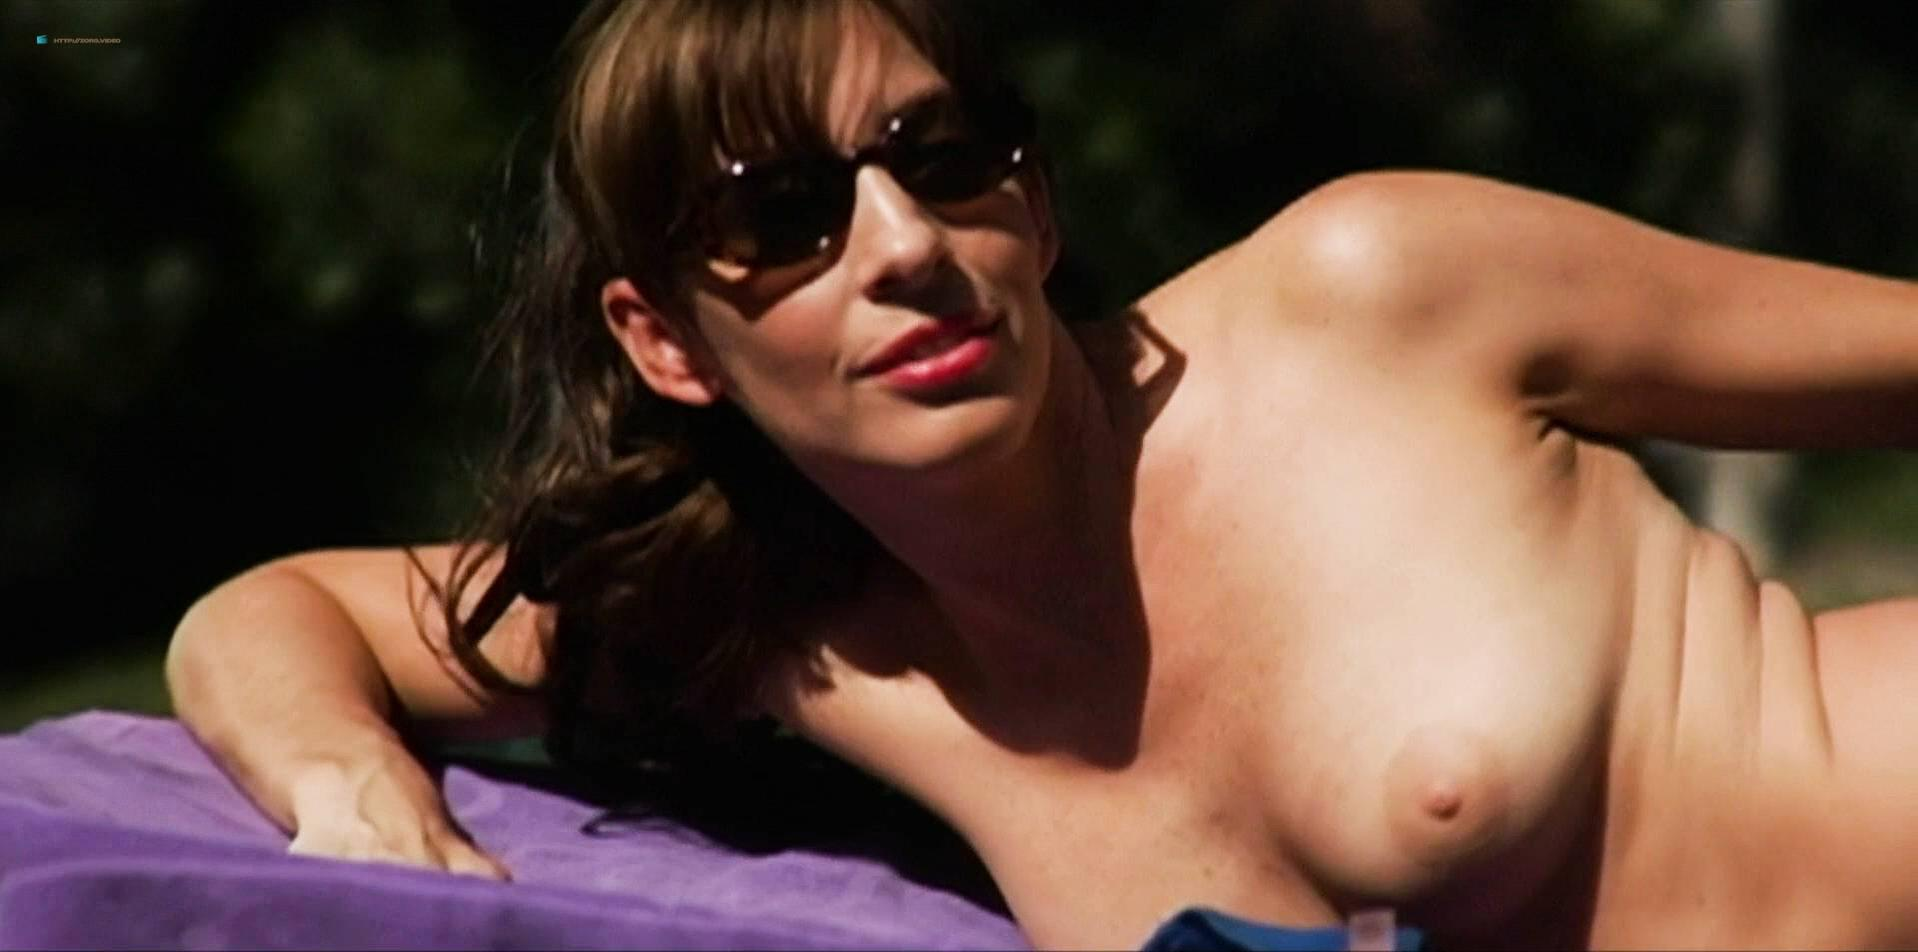 Erynn Dalton nude, Amie Dellavalle nude, Heather Joy Budner sexy - Passing Fancy (2005)